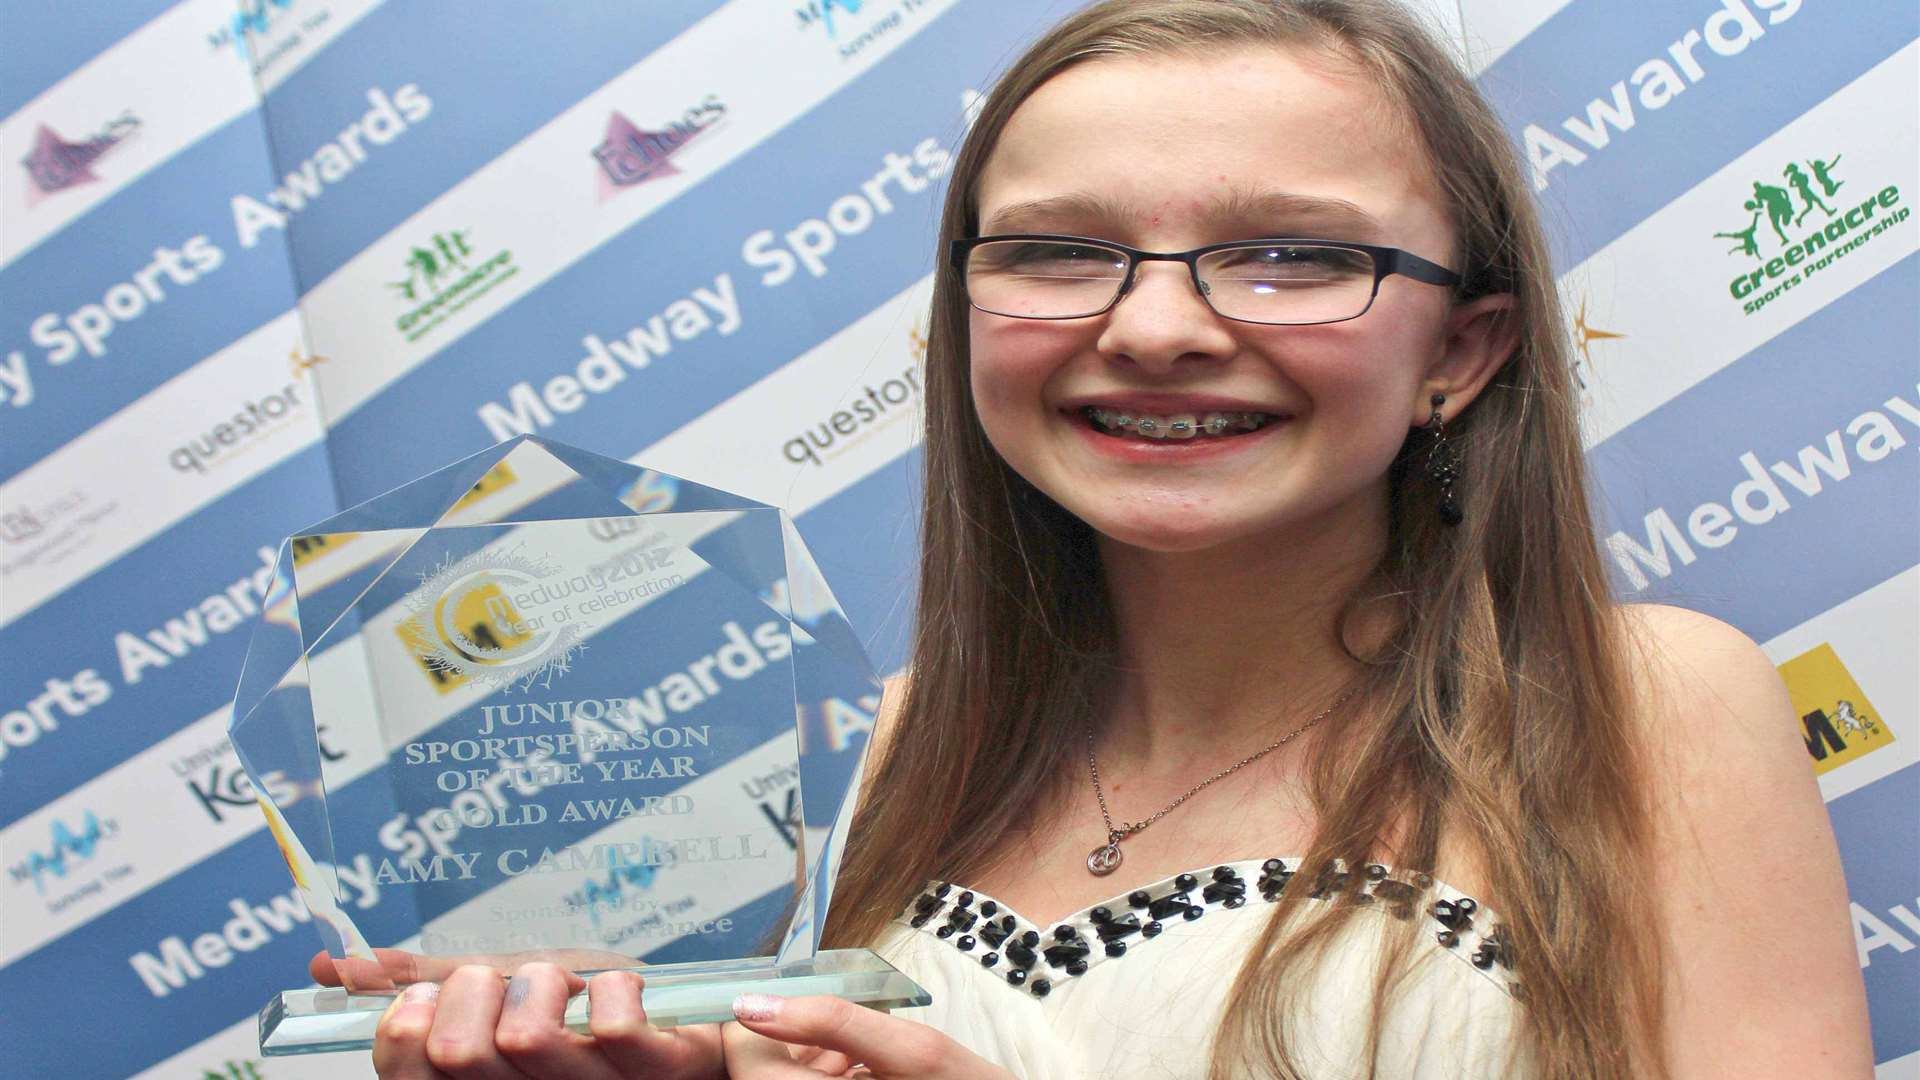 Junior Sportsperson of the Year 2012, Amy Campbell. Picture: Darren Small